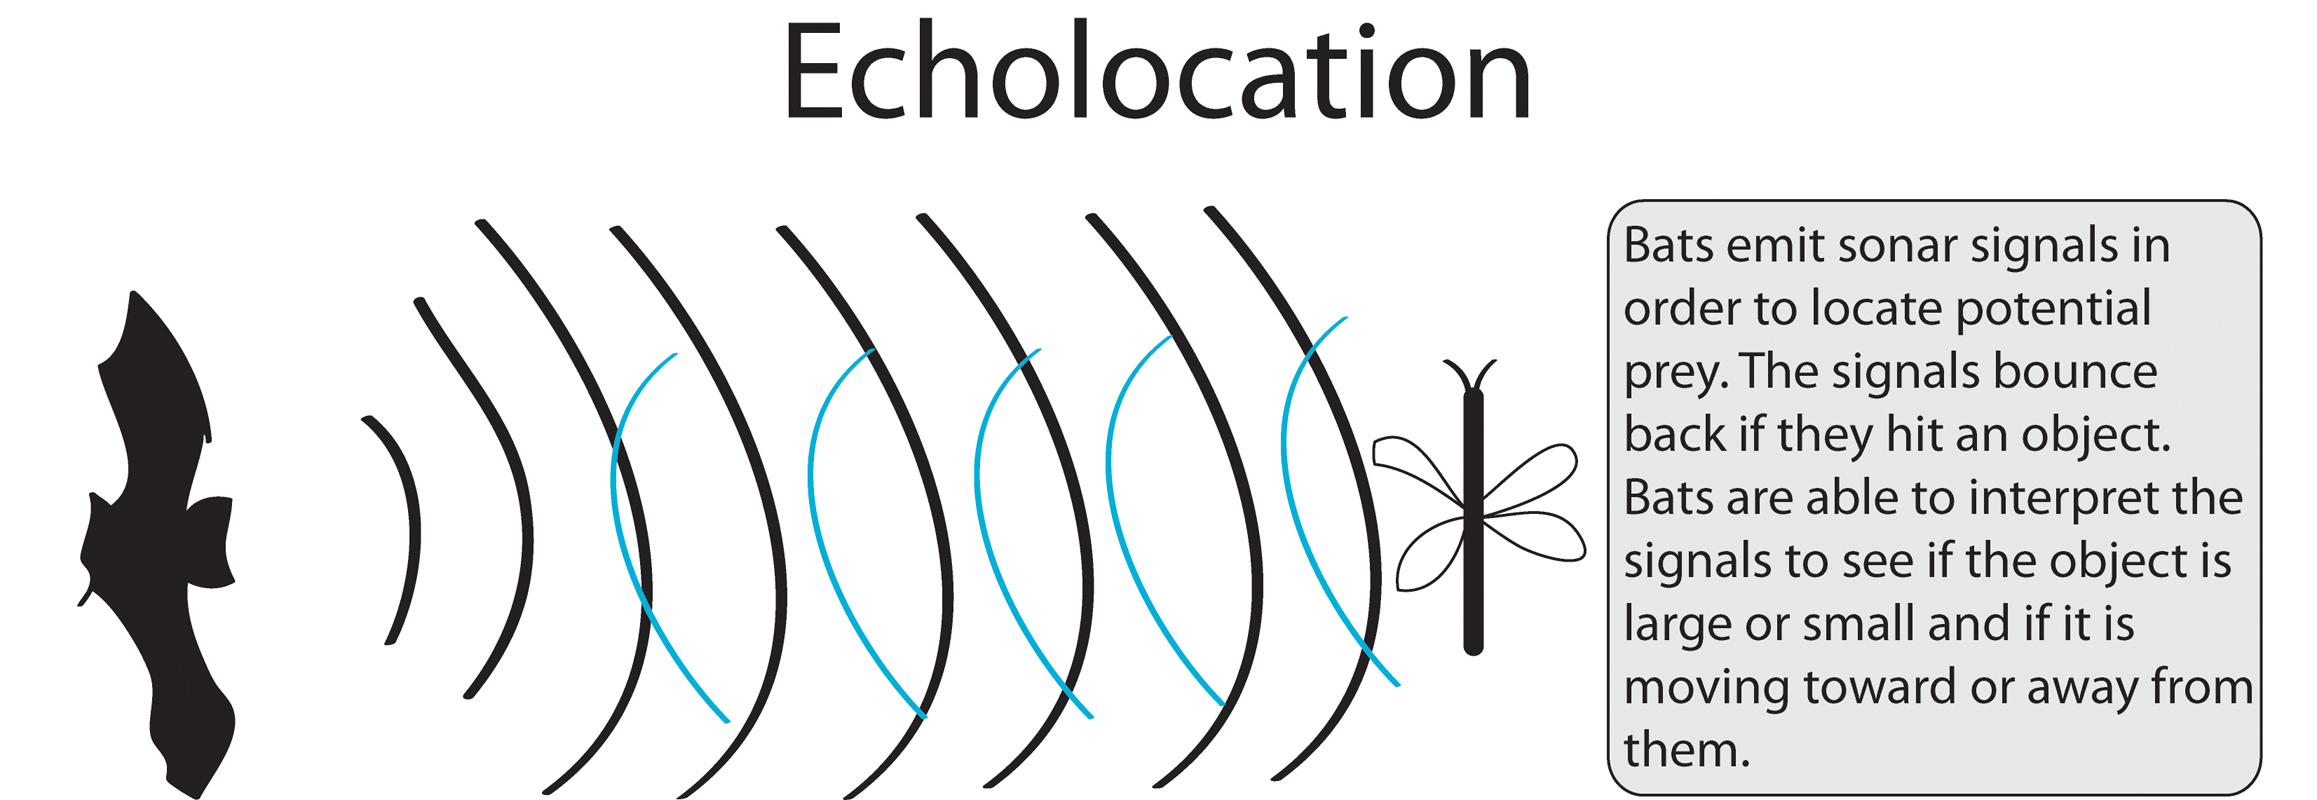 Echolocation allows dolphins, bats to navigate without sight - The ...